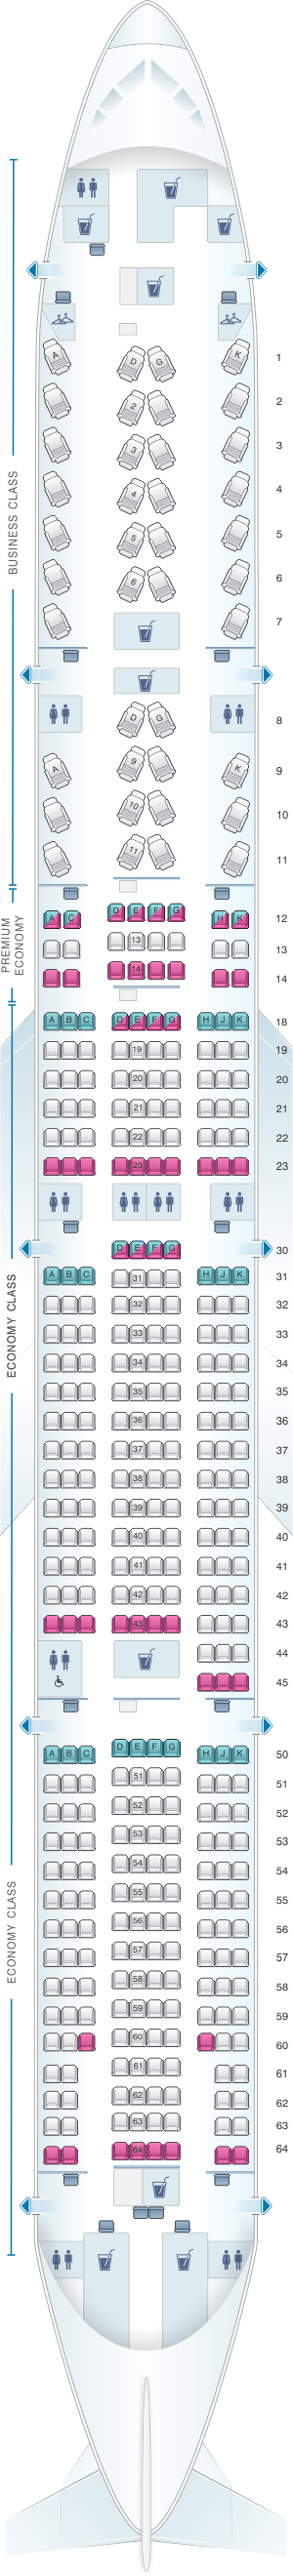 Seat map for Air Canada Boeing B777 300ER (77W) International Layout 1